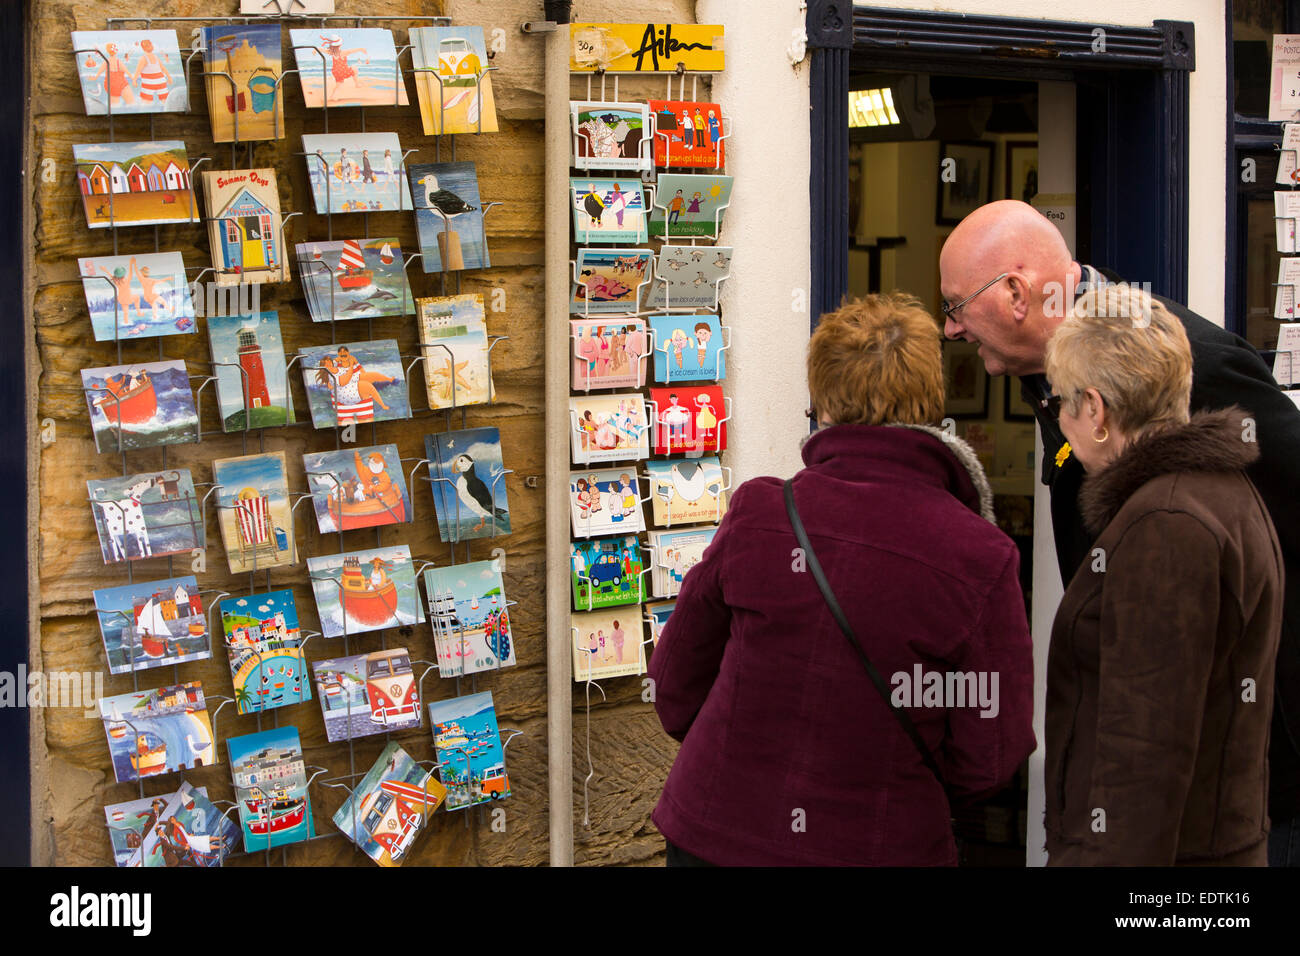 UK, England, Yorkshire, Whitby, Church Street, visitors looking at humorous picture postcard display - Stock Image